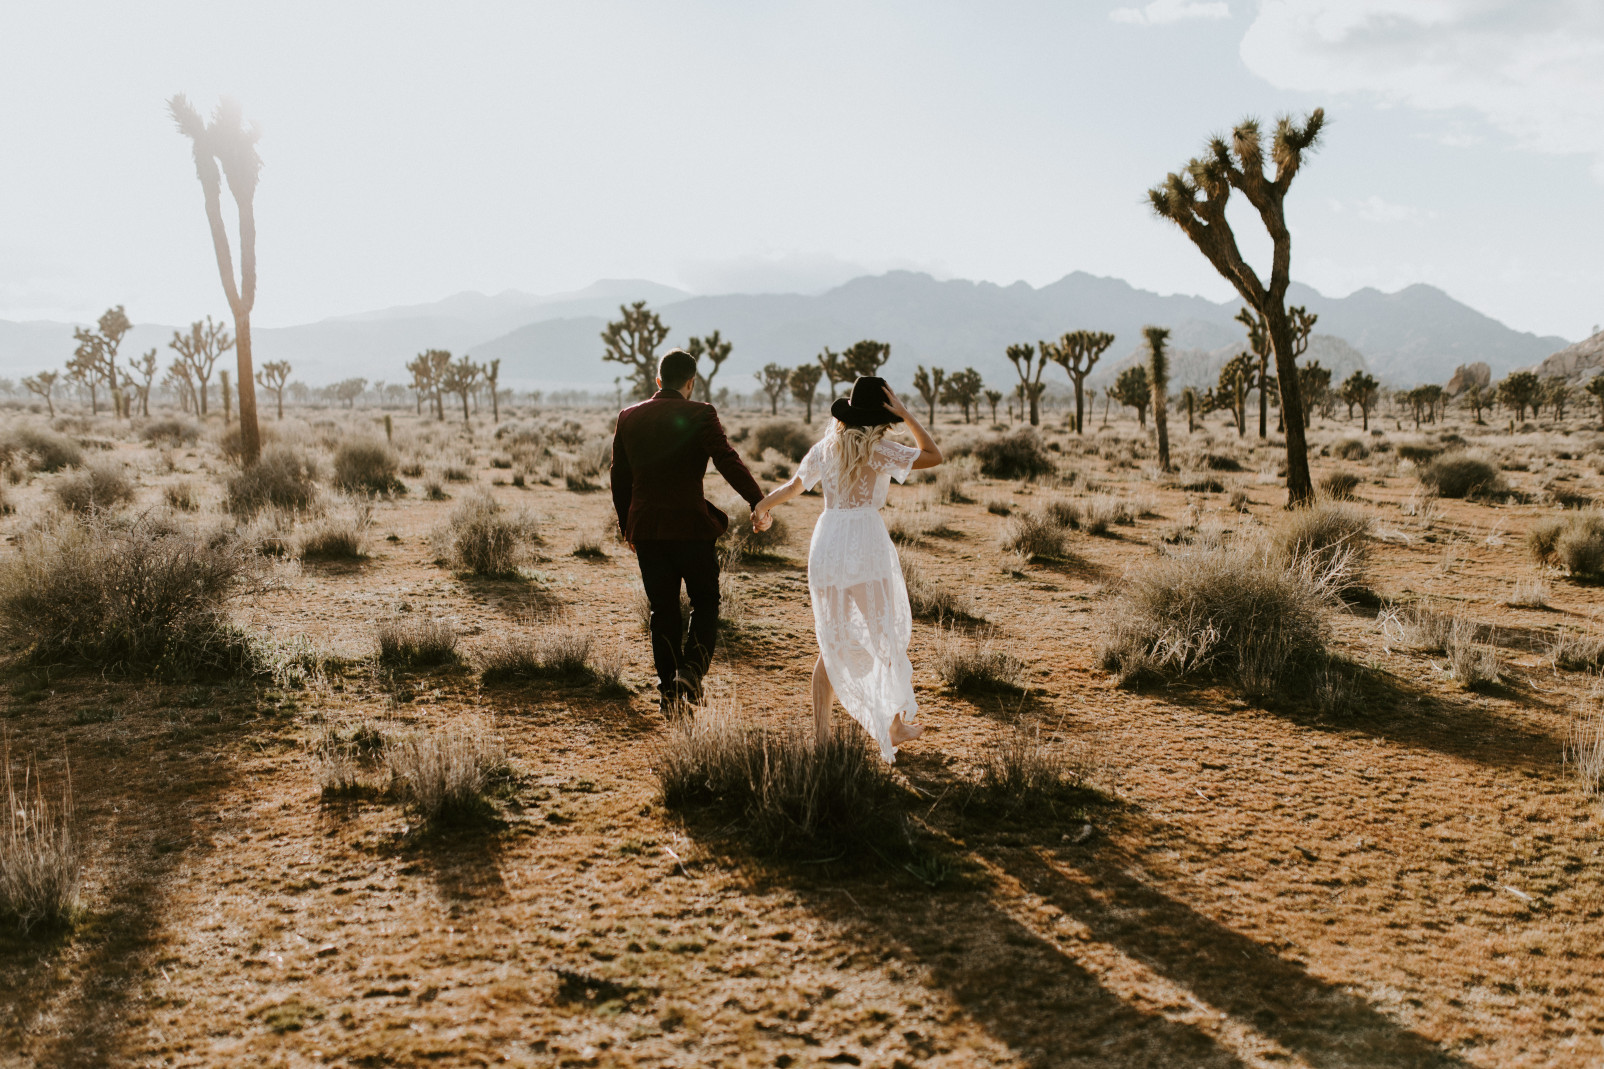 Alyssa and Jeremy walk through Joshua Tree National Park, CA Elopement wedding photography at Joshua Tree National Park by Sienna Plus Josh.